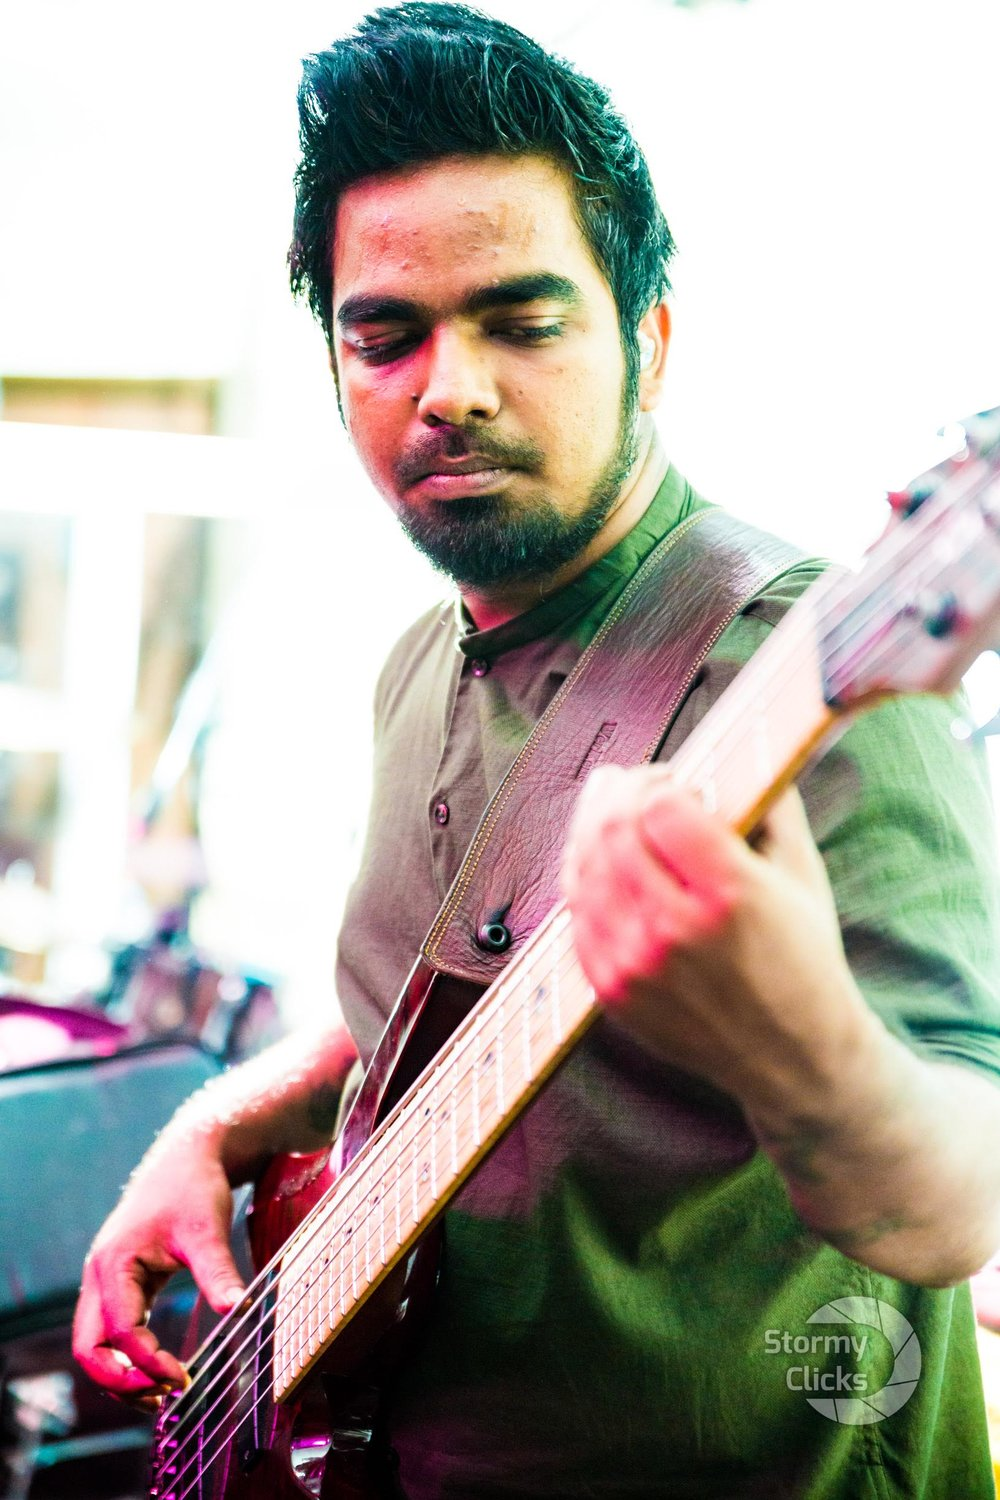 Bumon Kashyap is a self-taught basist from Assam who has been playing for 10 years is also an audio engineering professional.   He enjoys playing funk, rock, RnB, Jazz etc.